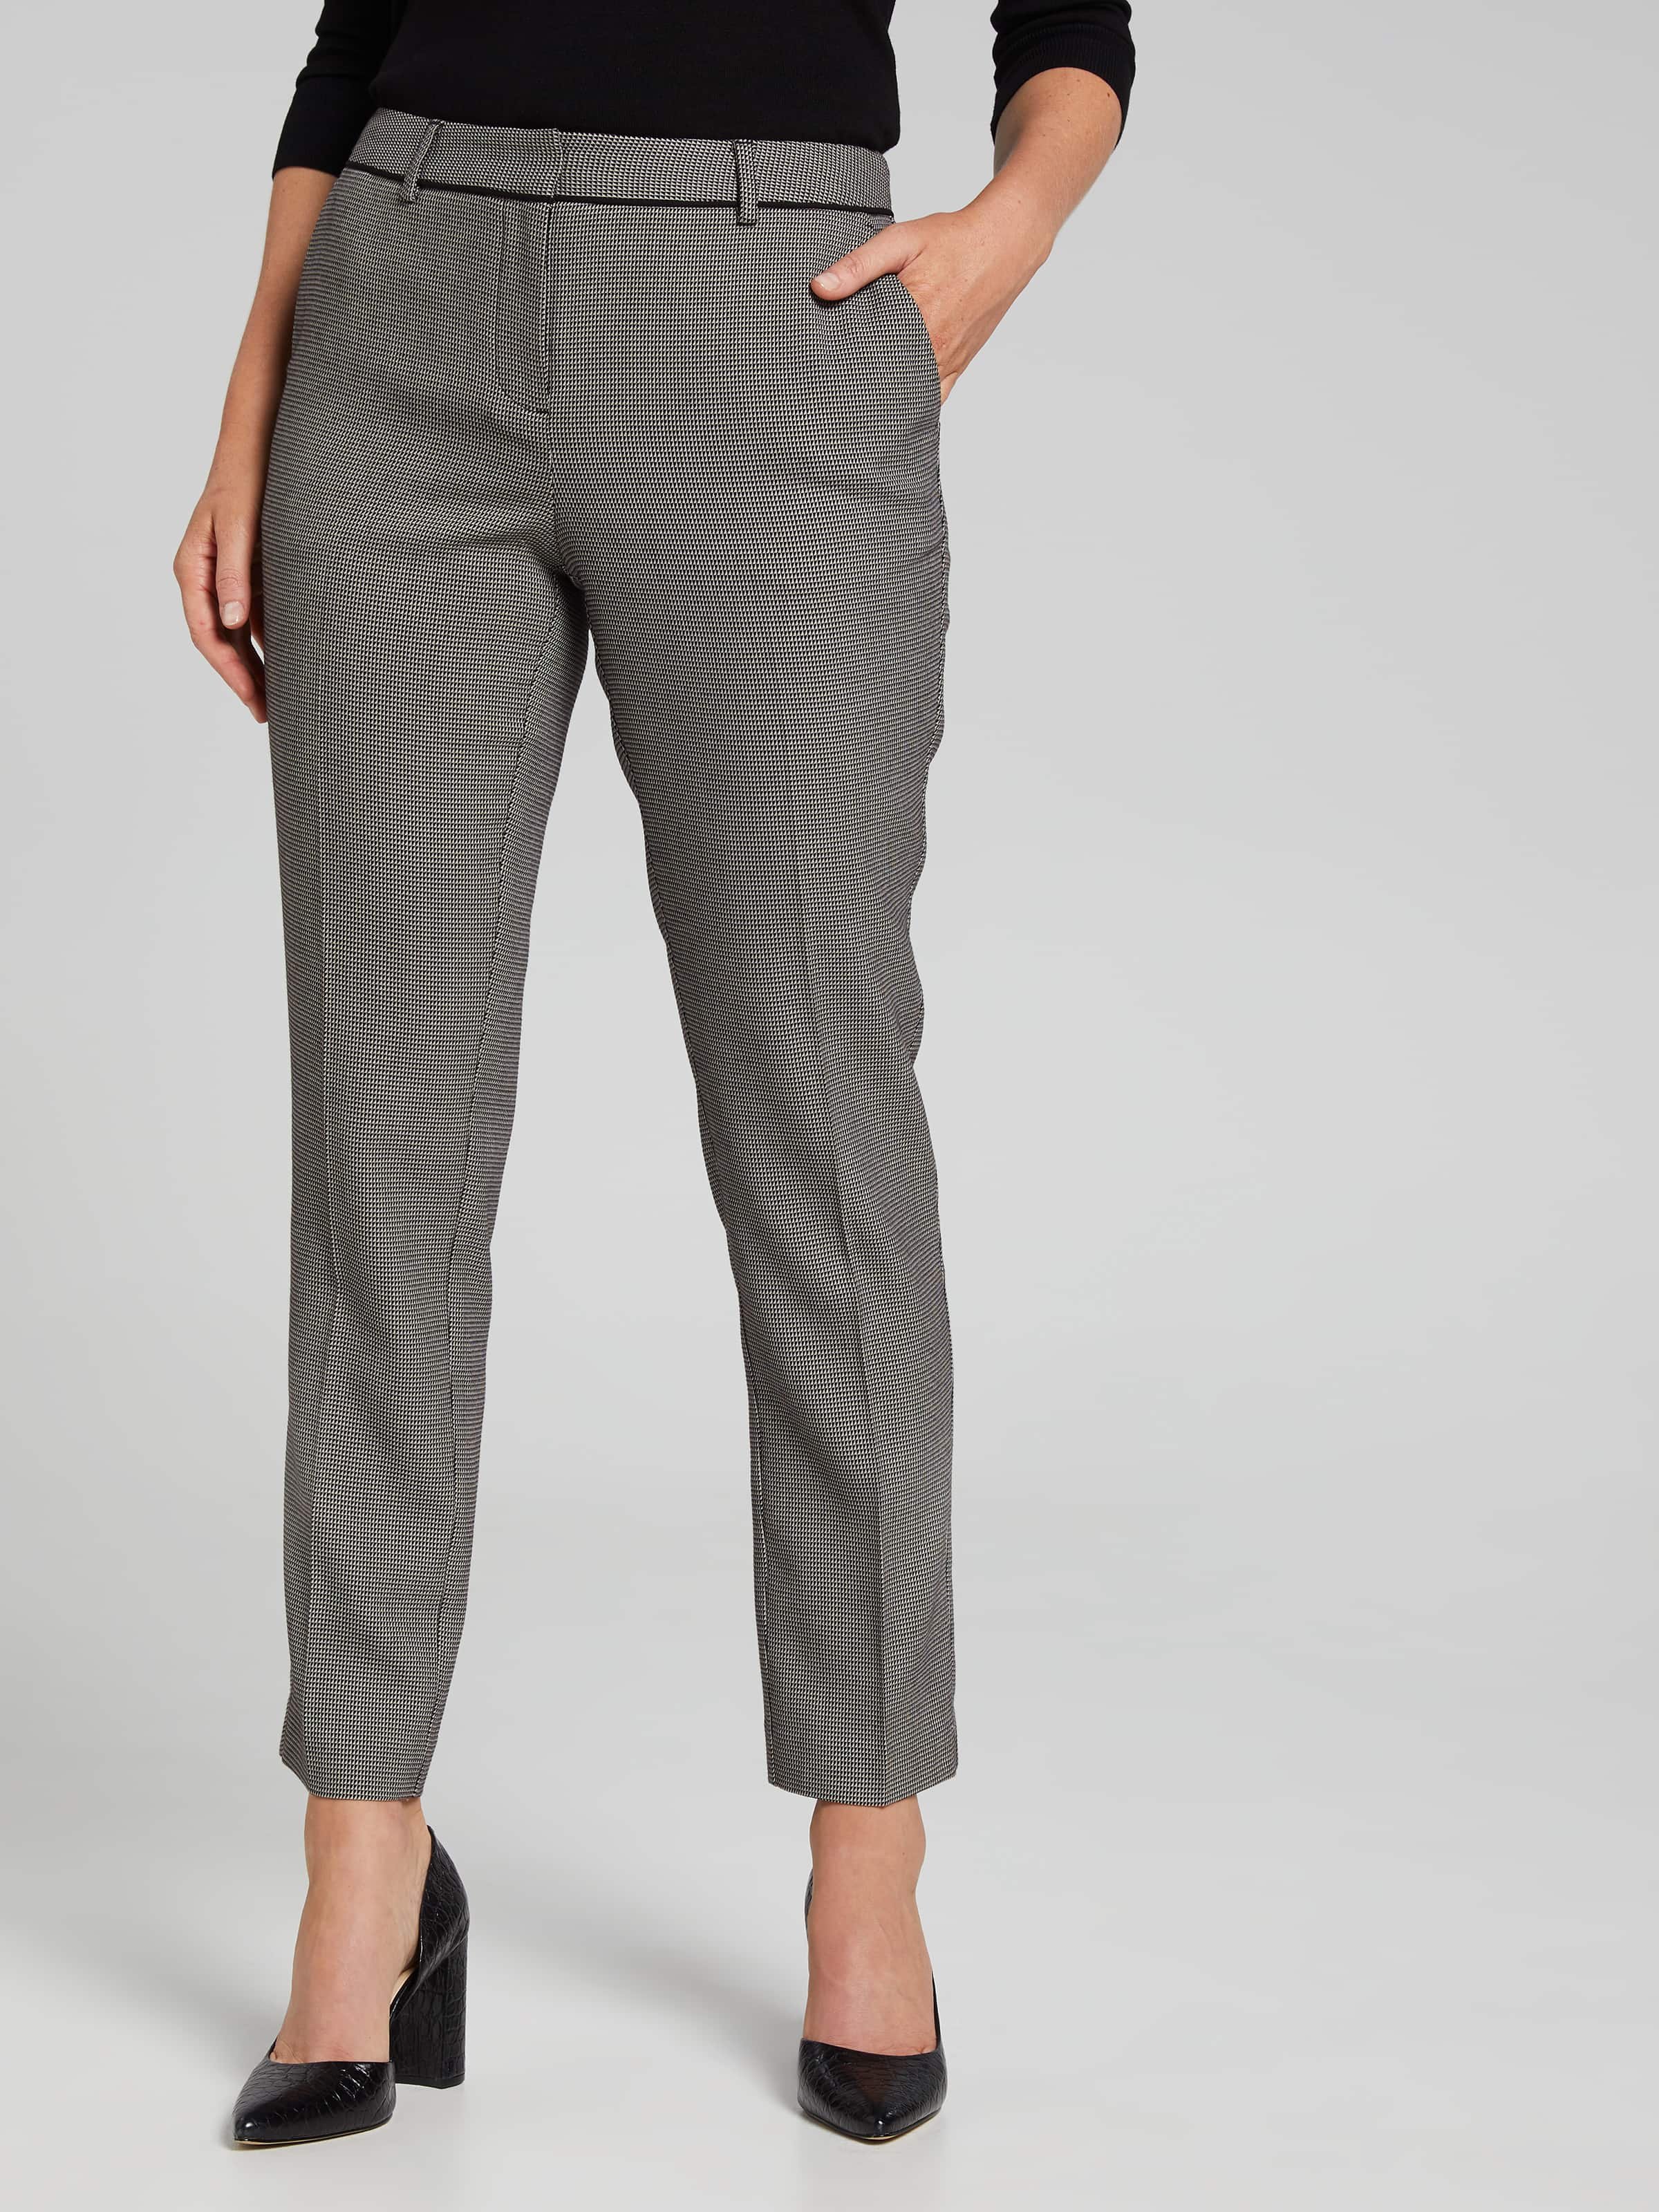 Image of Jacqui E Australia Jacqui E Geo Piped Slim Leg Suit Pant